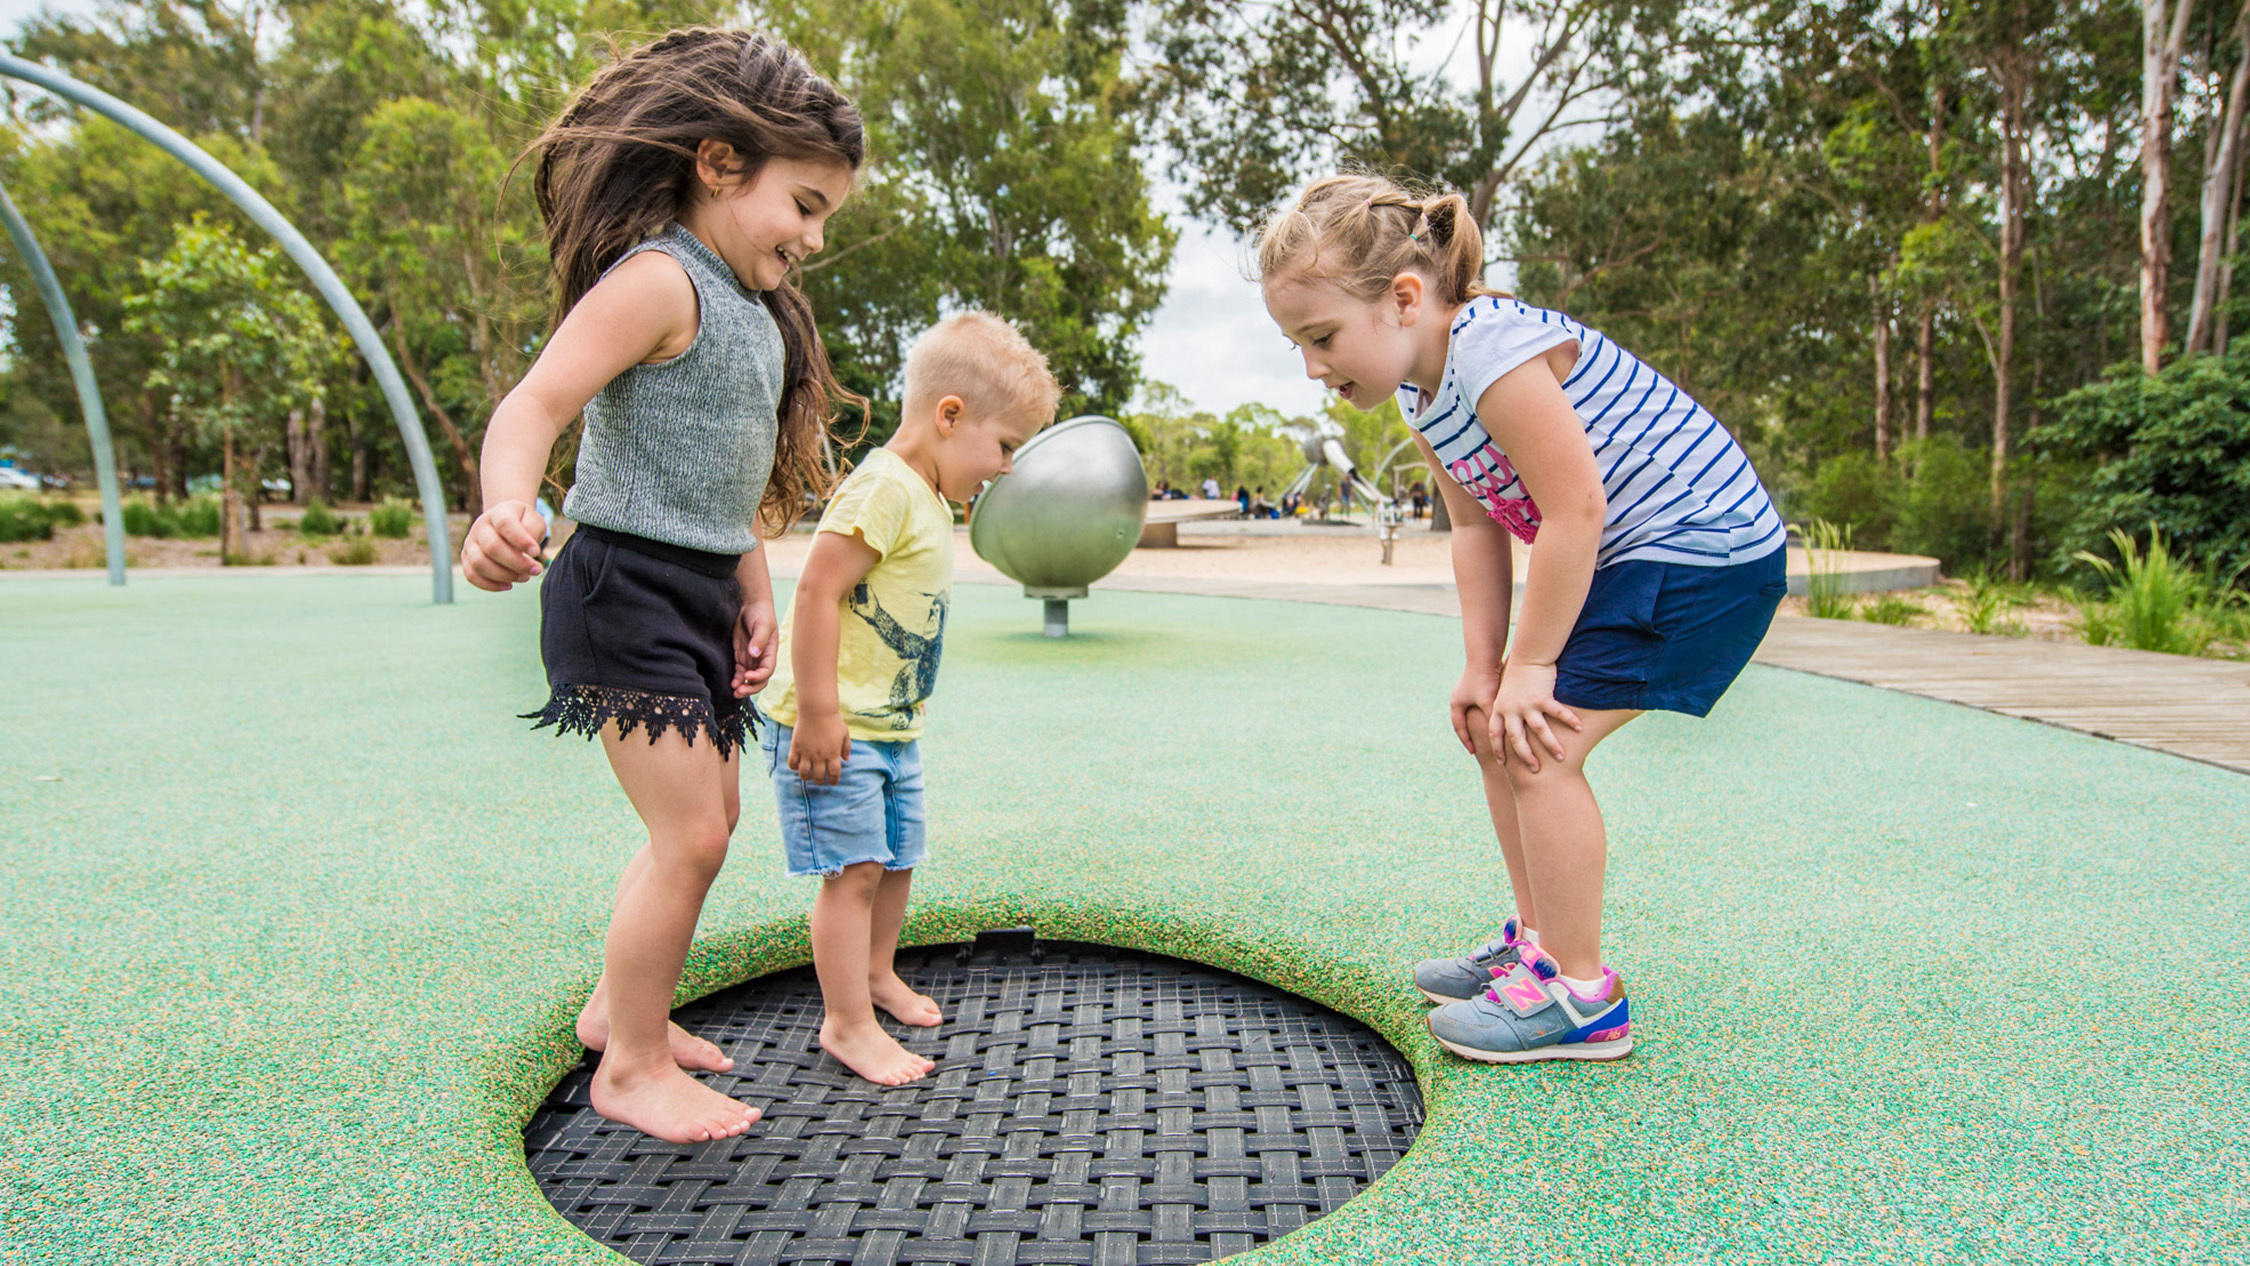 Trampoline at Domain Creek Playground